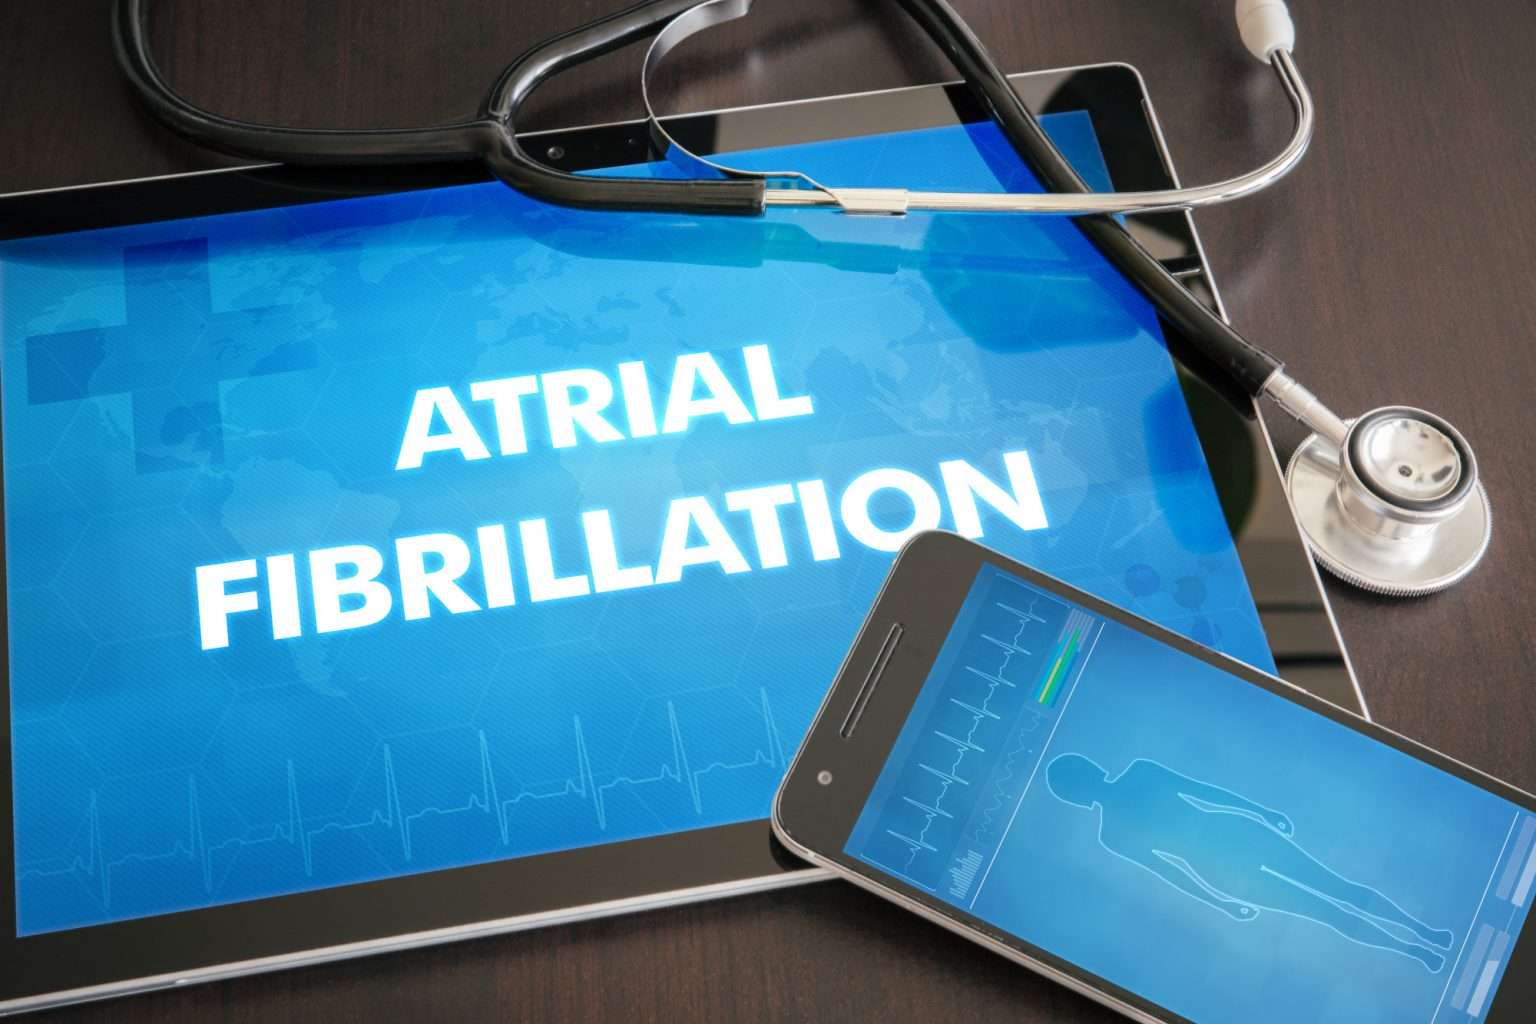 You have Been Diagnosed with Atrial Fibrillation